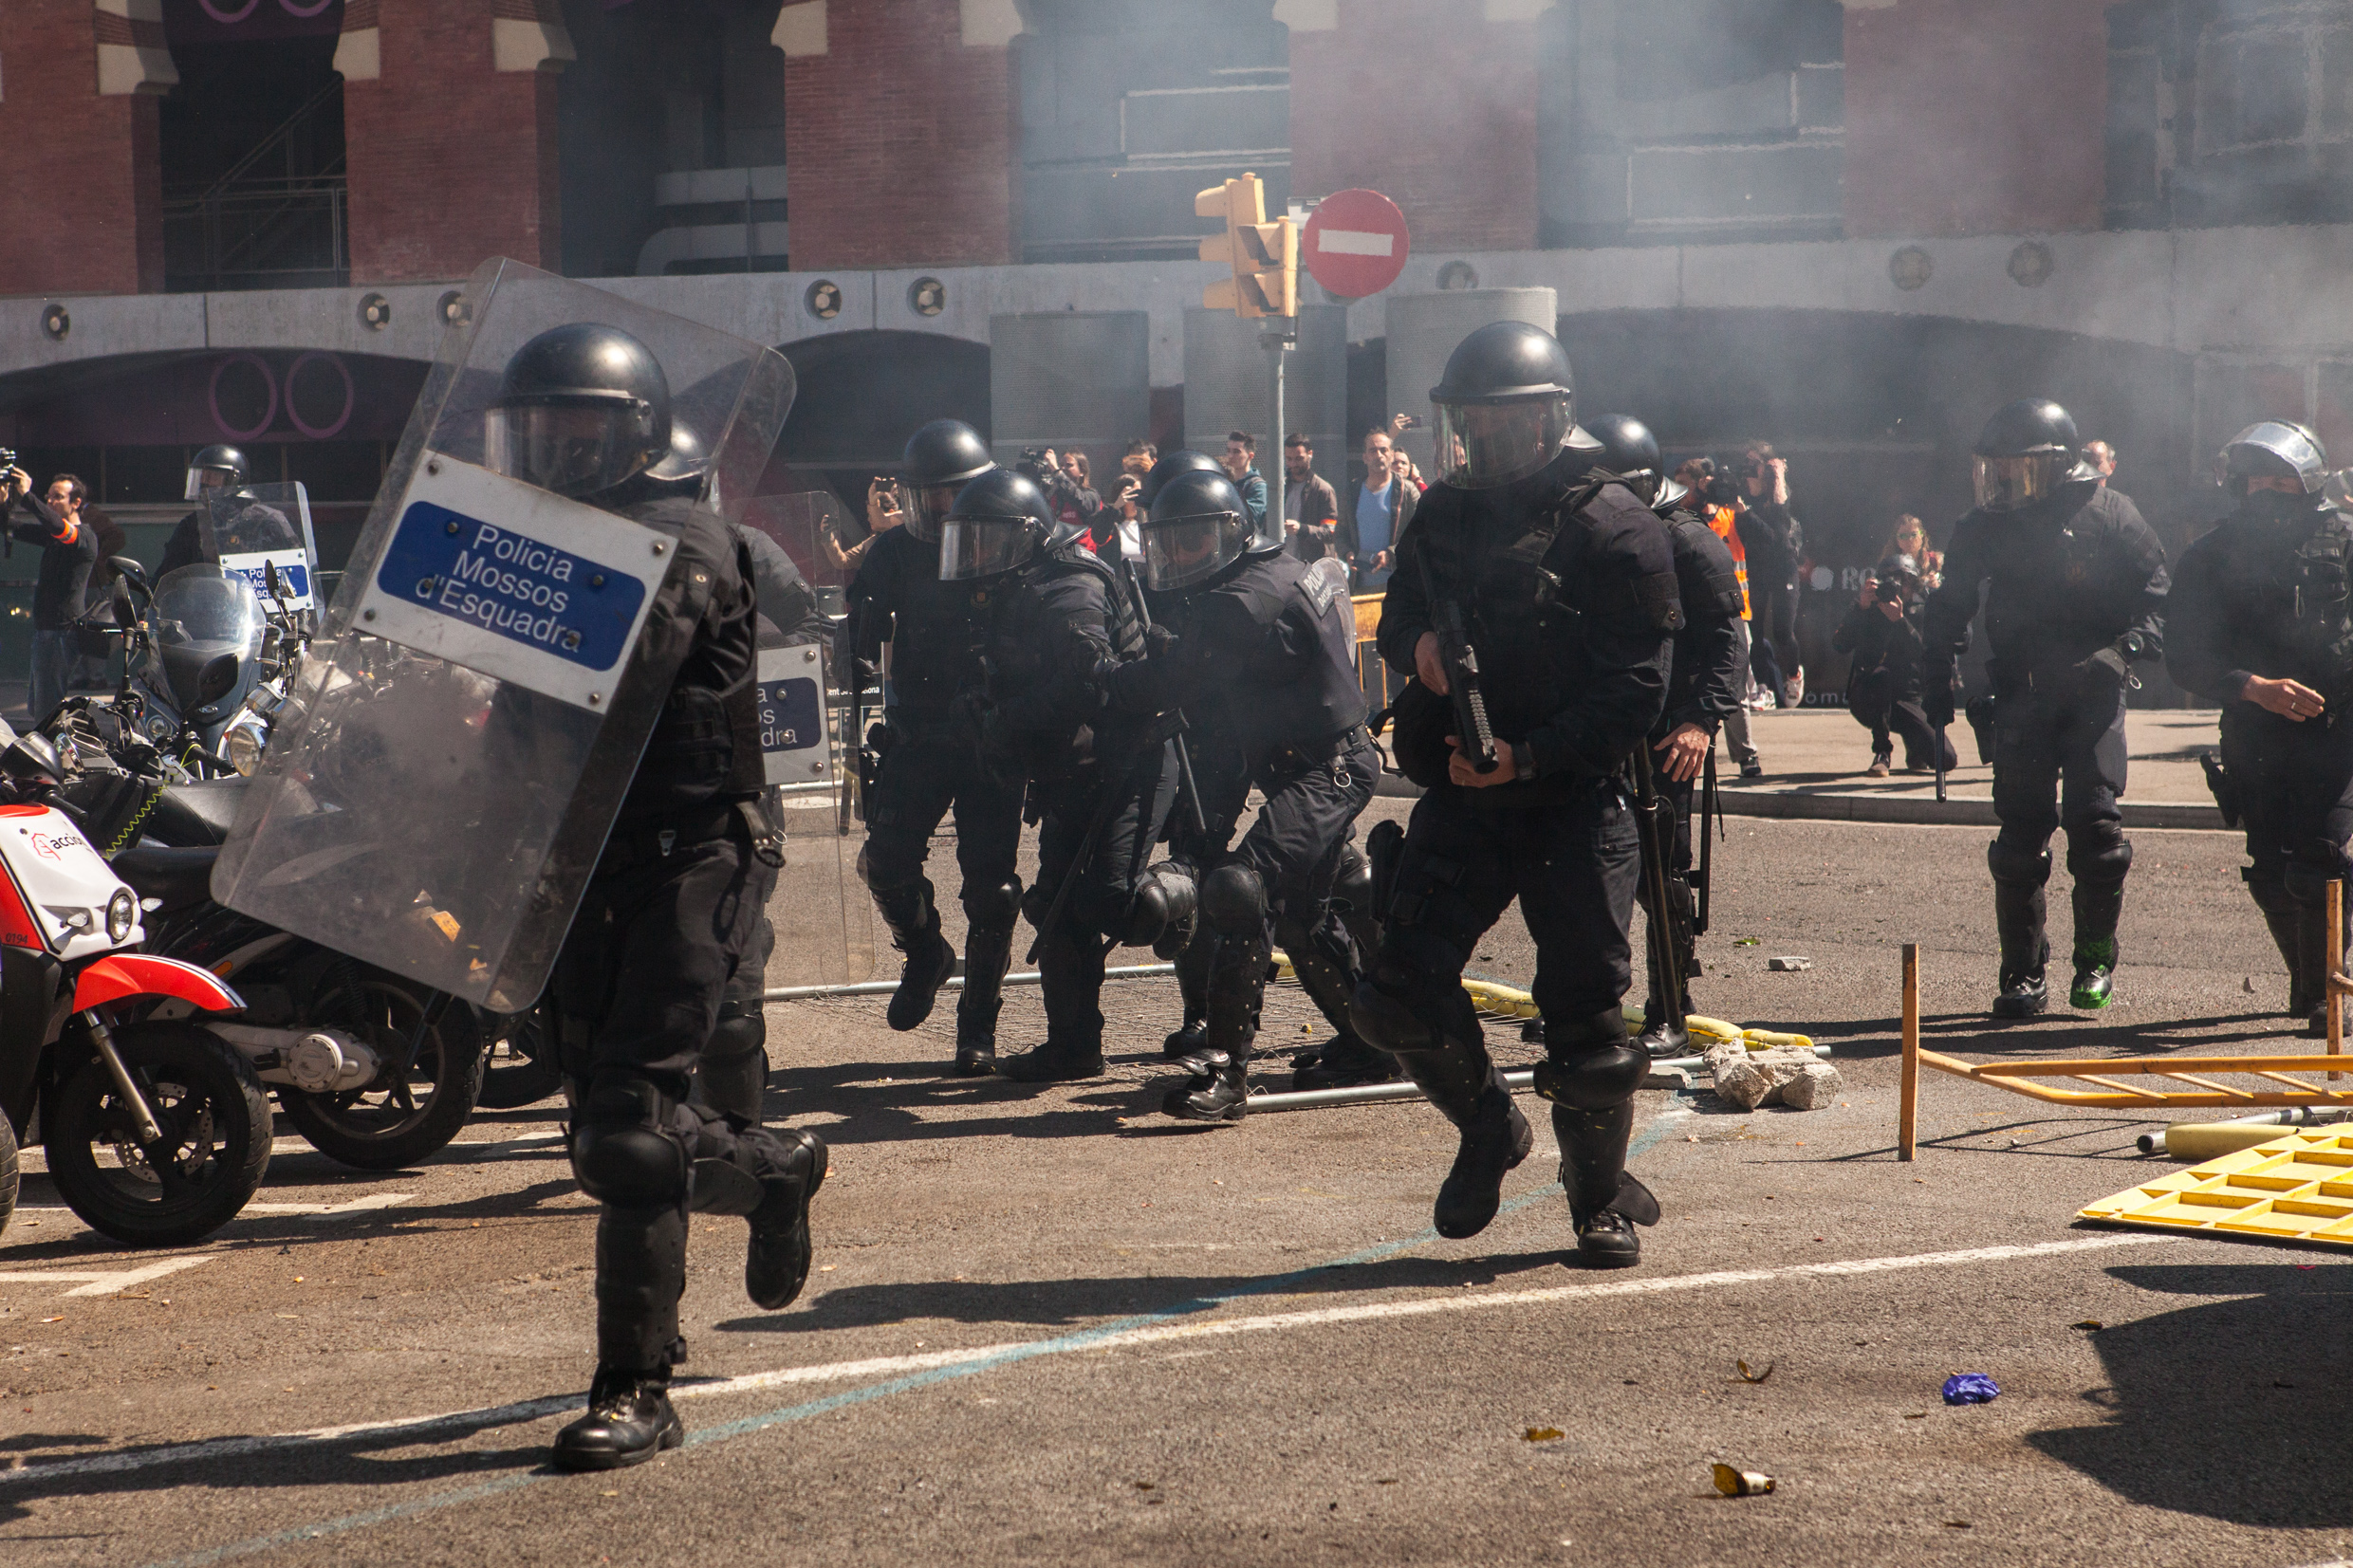 Catalan police charging the antifascist group. Barcelona